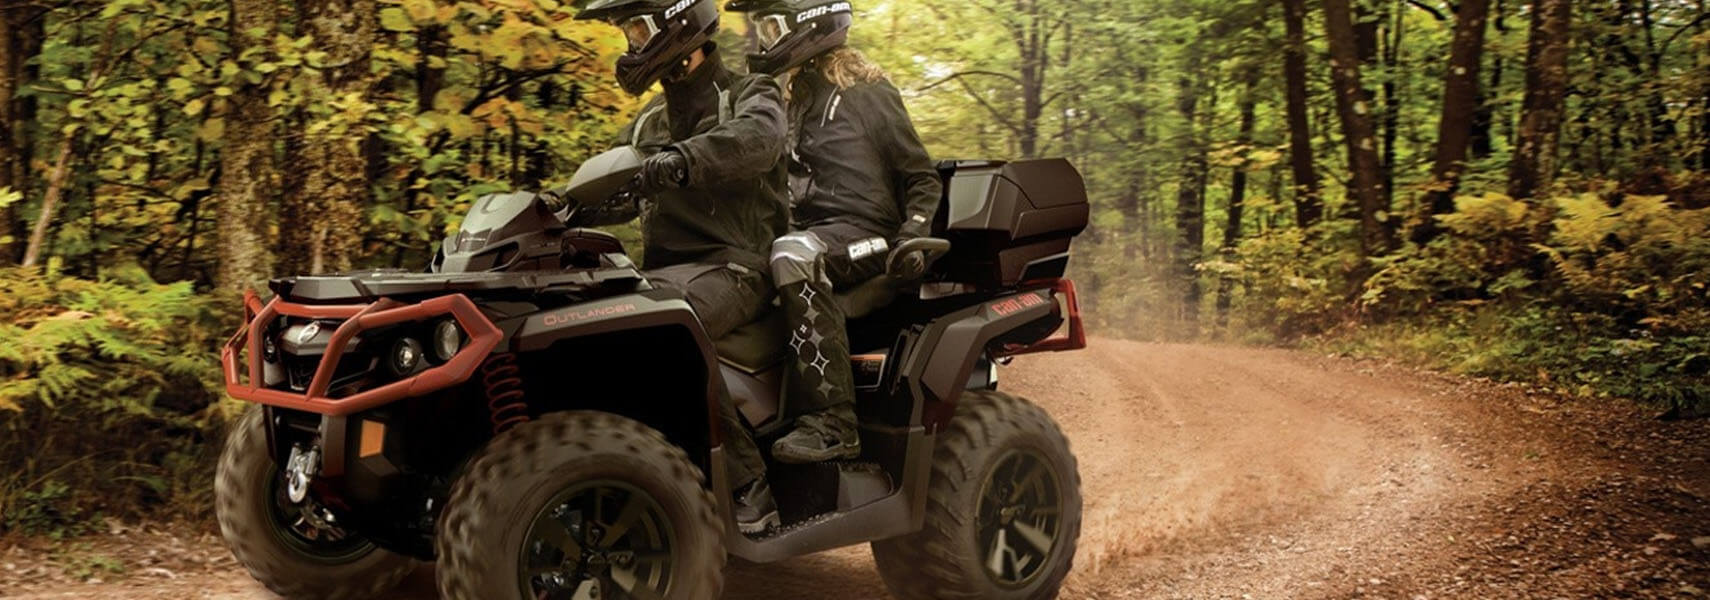 Can-Am ATV - 2020 OUTLANDER MAX PRO+ 650 T